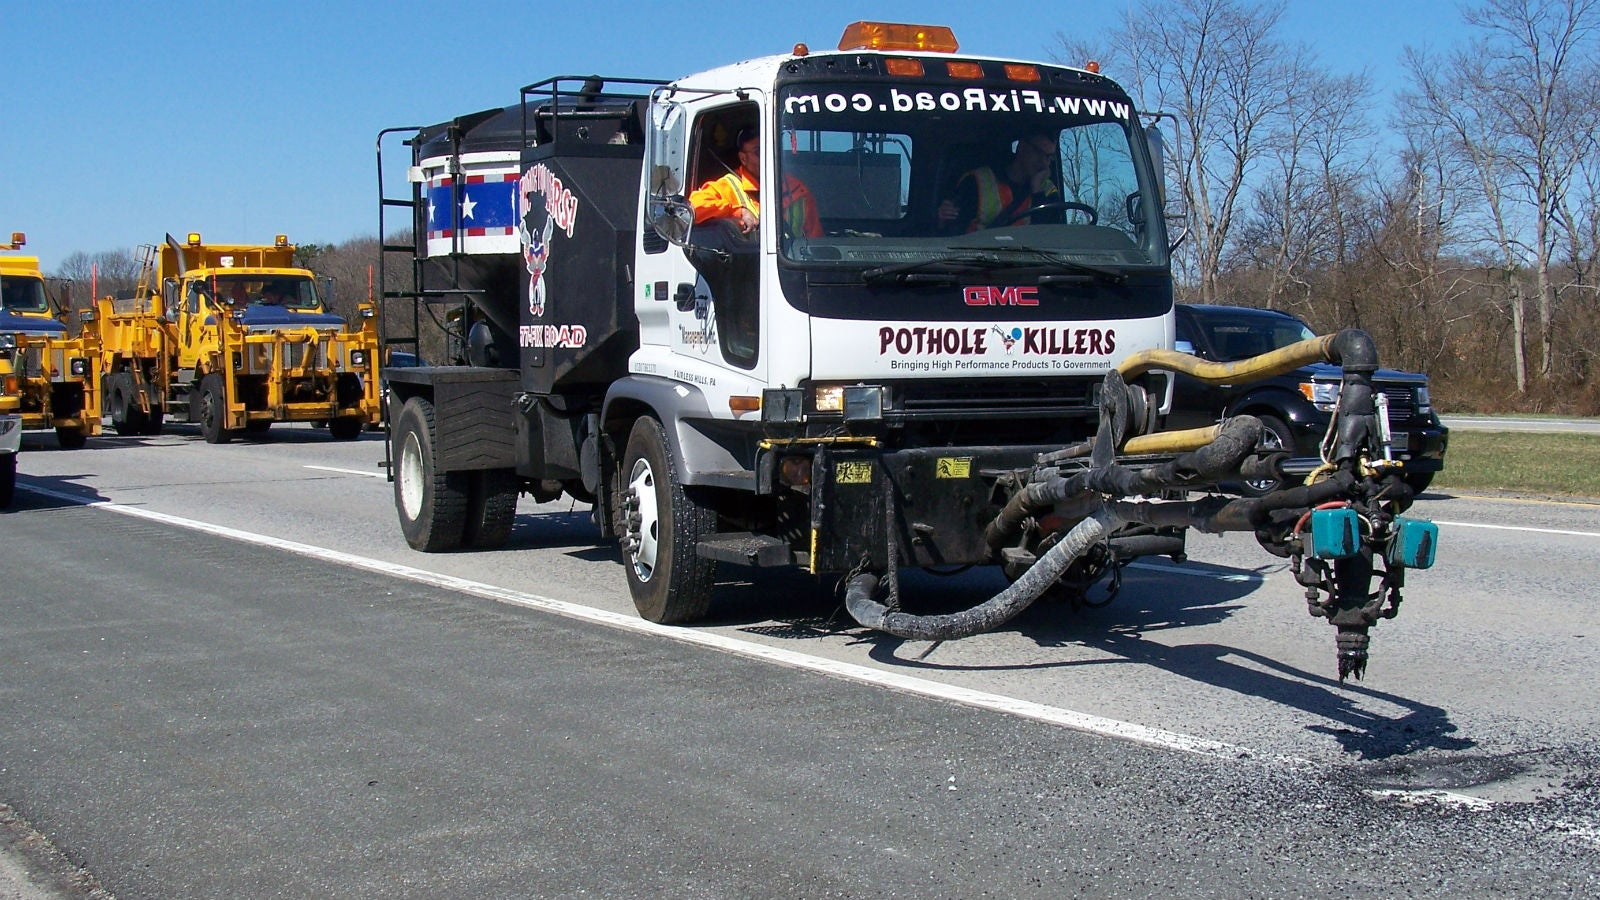 This Utility Truck Can Exterminate a Pothole Every 120 Seconds